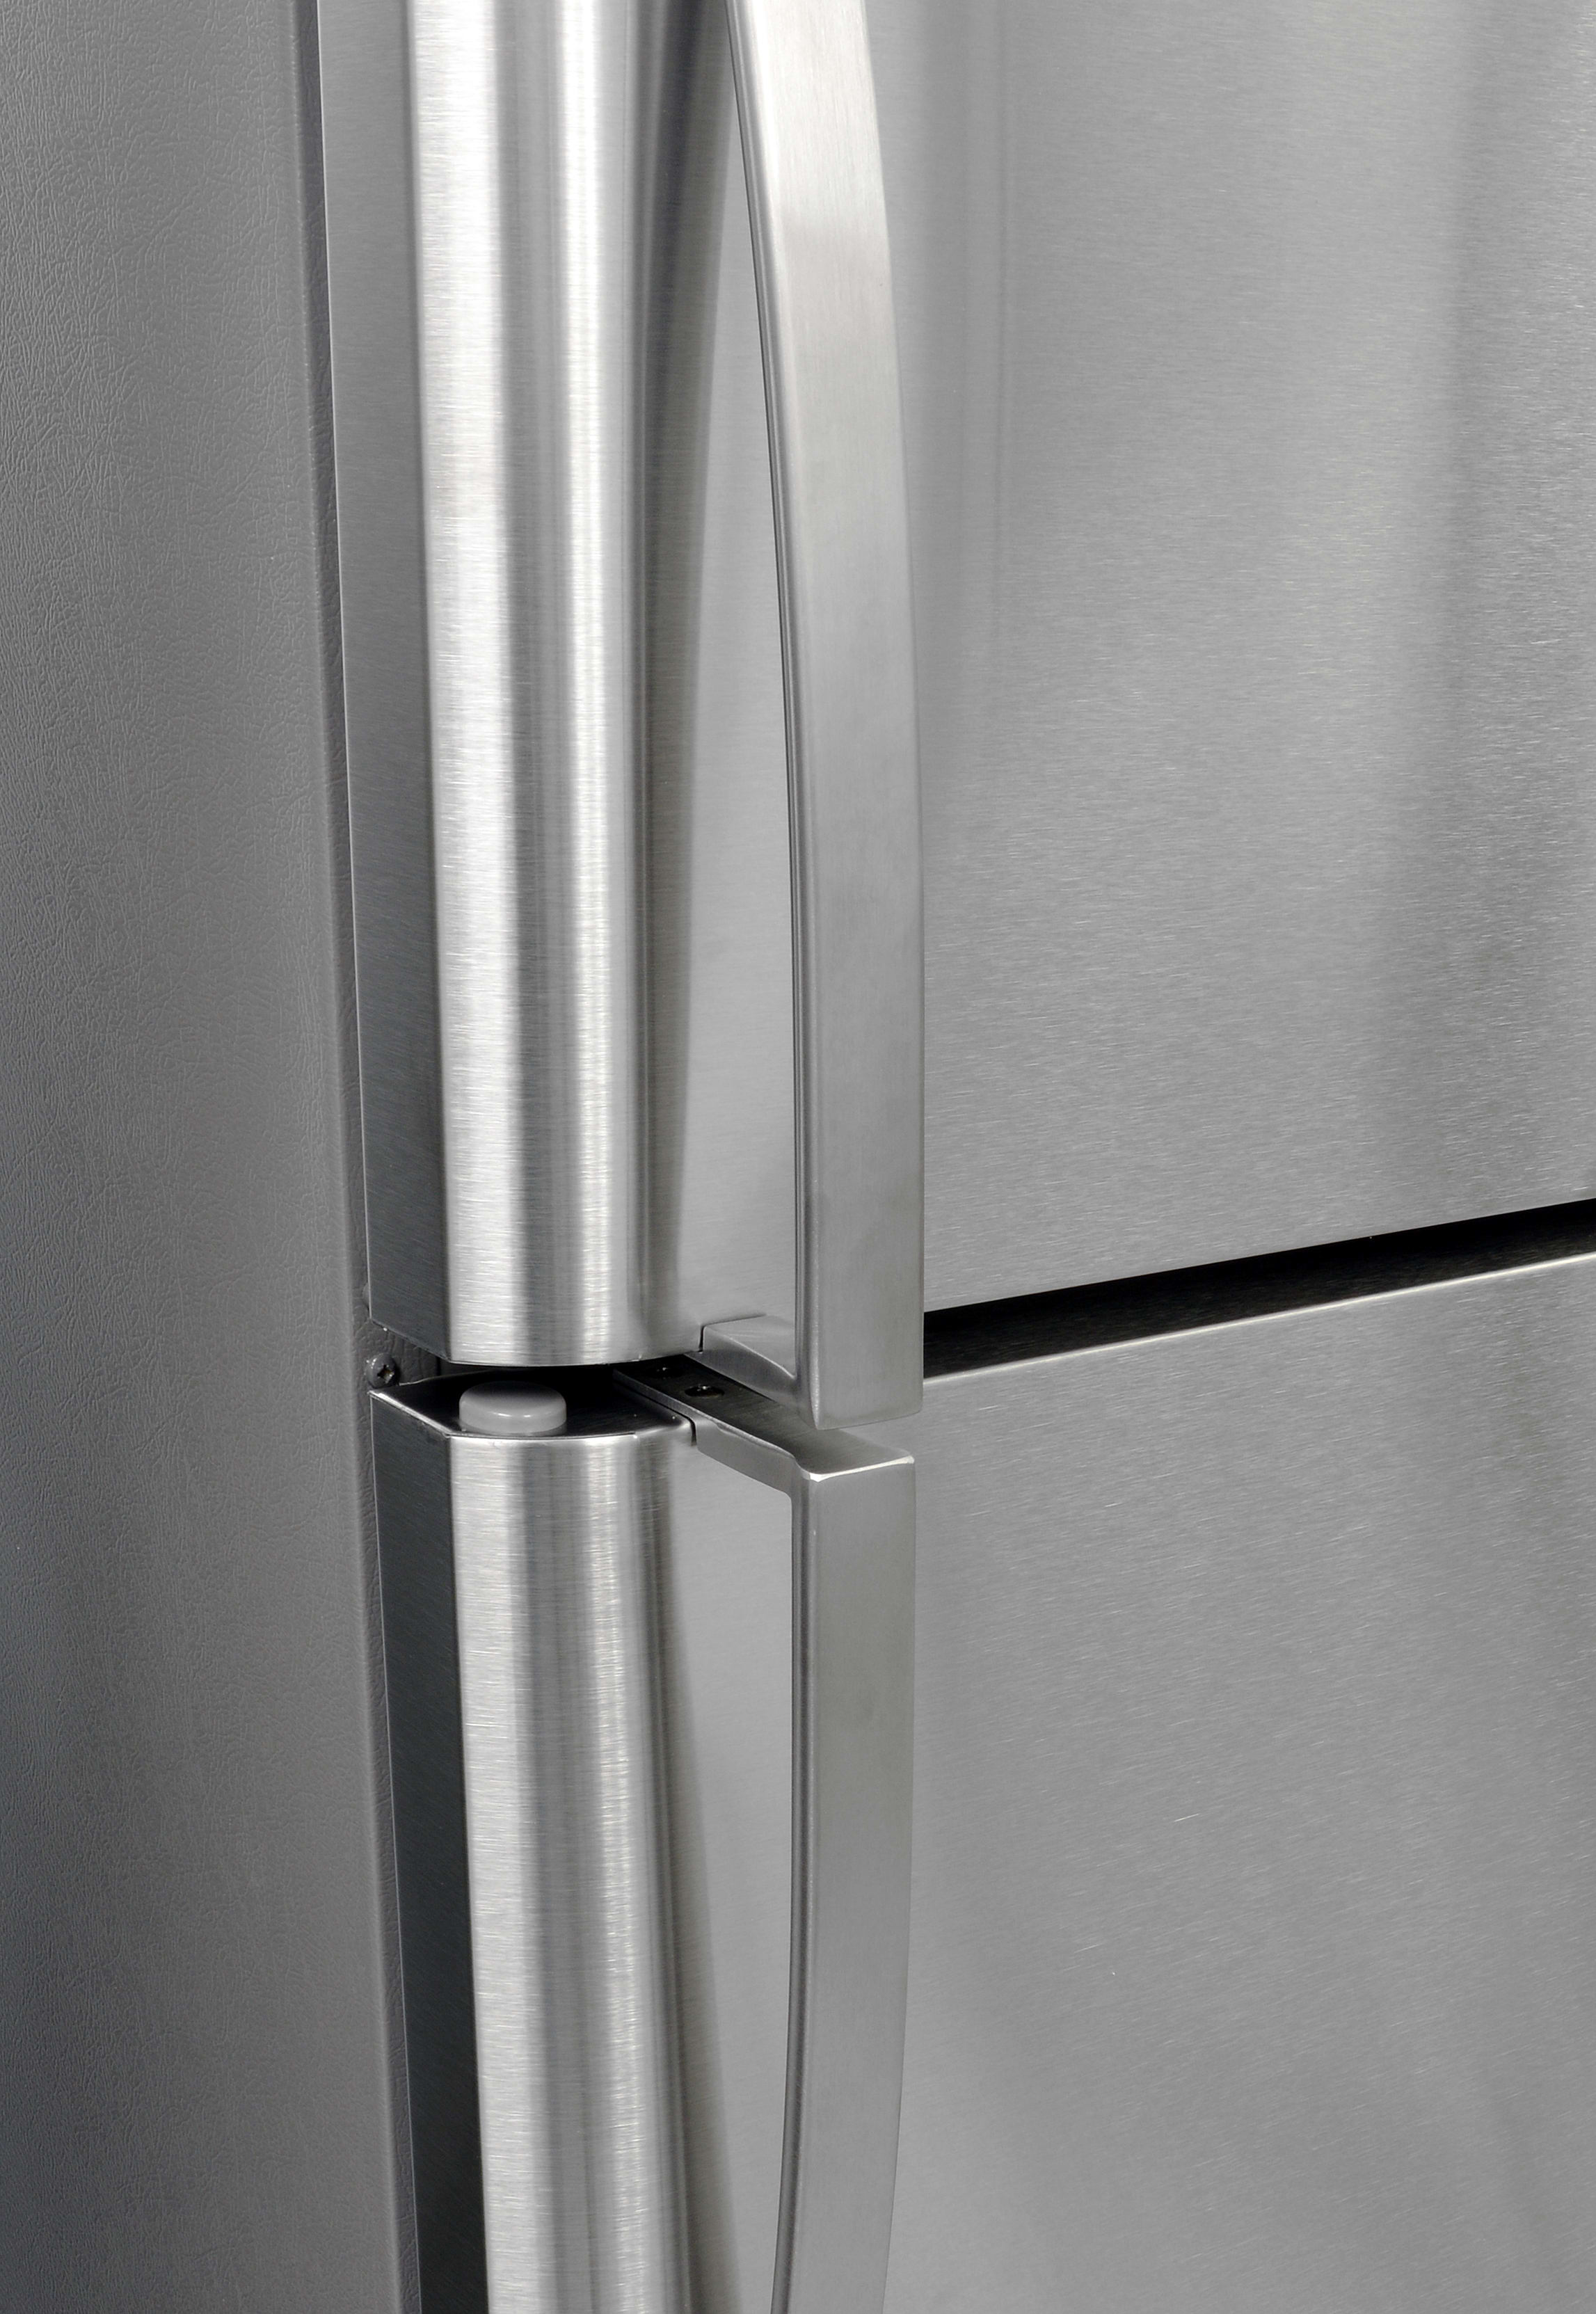 The Kenmore 70623's sturdy handles, like the stainless finish, are prone to smudging.